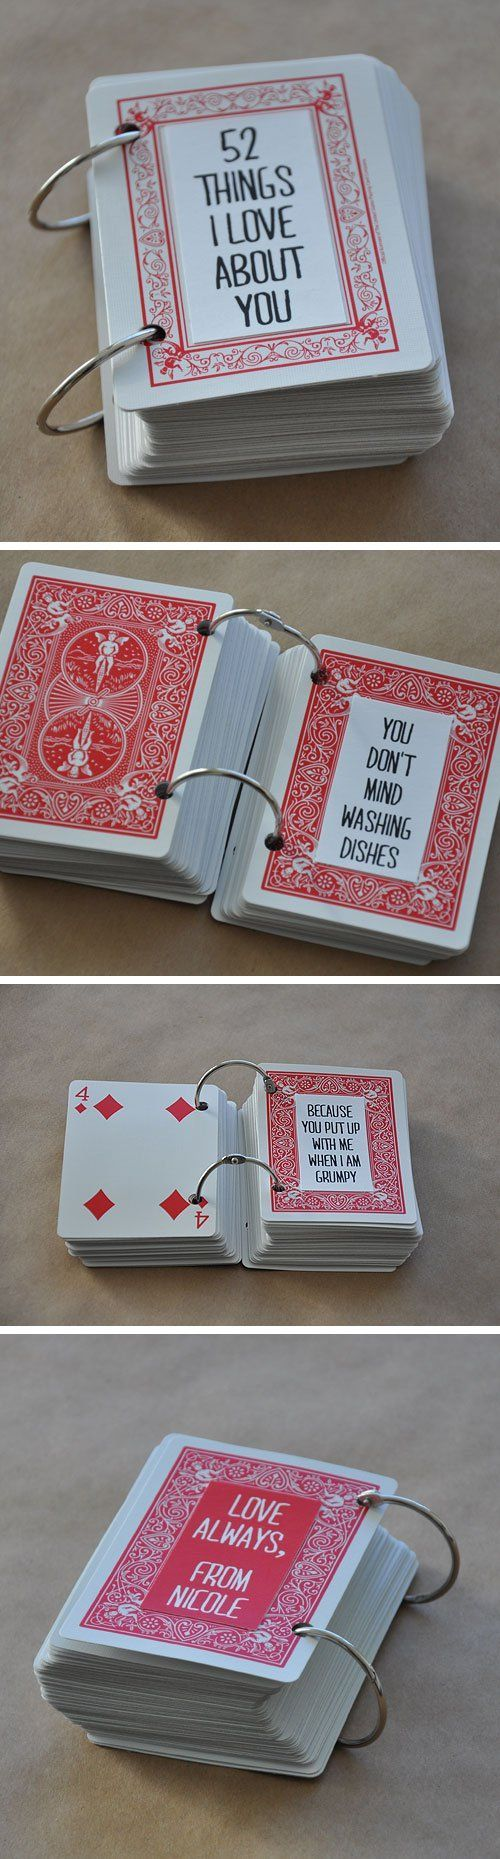 Homemade Gifts: Love how this requires you to be creative with what you write on each card.